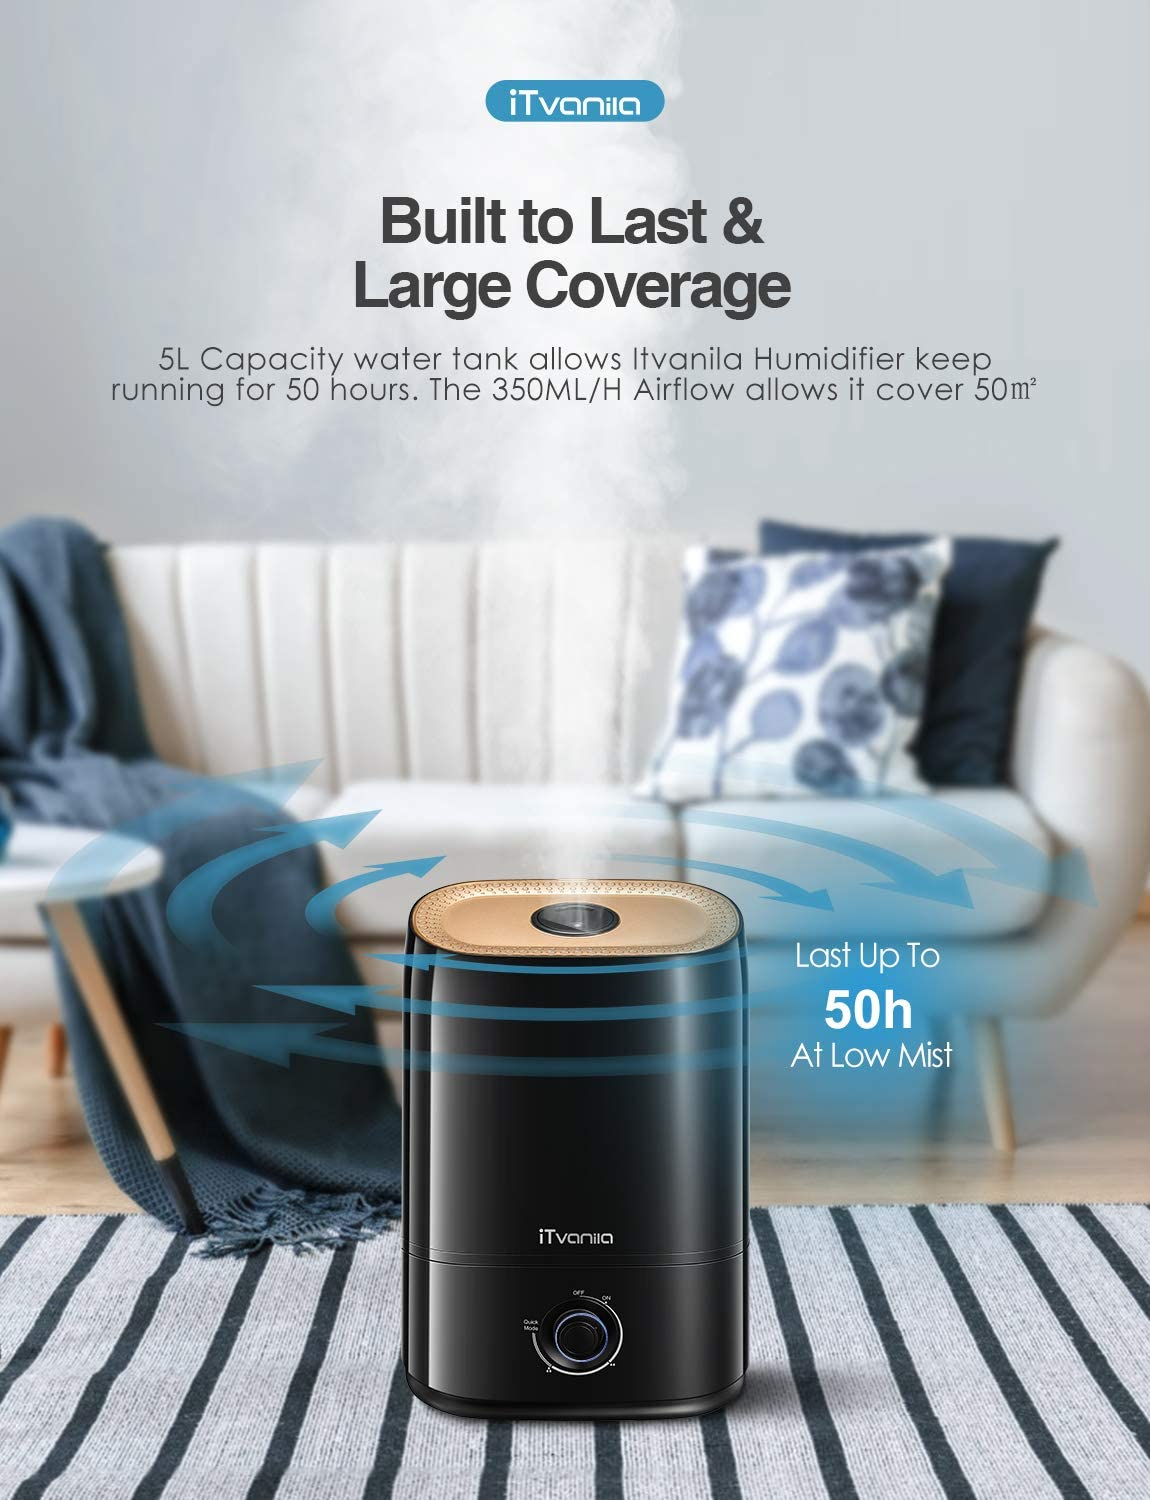 iTvanila Cool Mist Humidifiers, 5L Humidifier for Bedroom Large Room, Nano Coating, 360° Nozzle, Ultra Quiet, Auto Shut Off, Easy to Clean, High